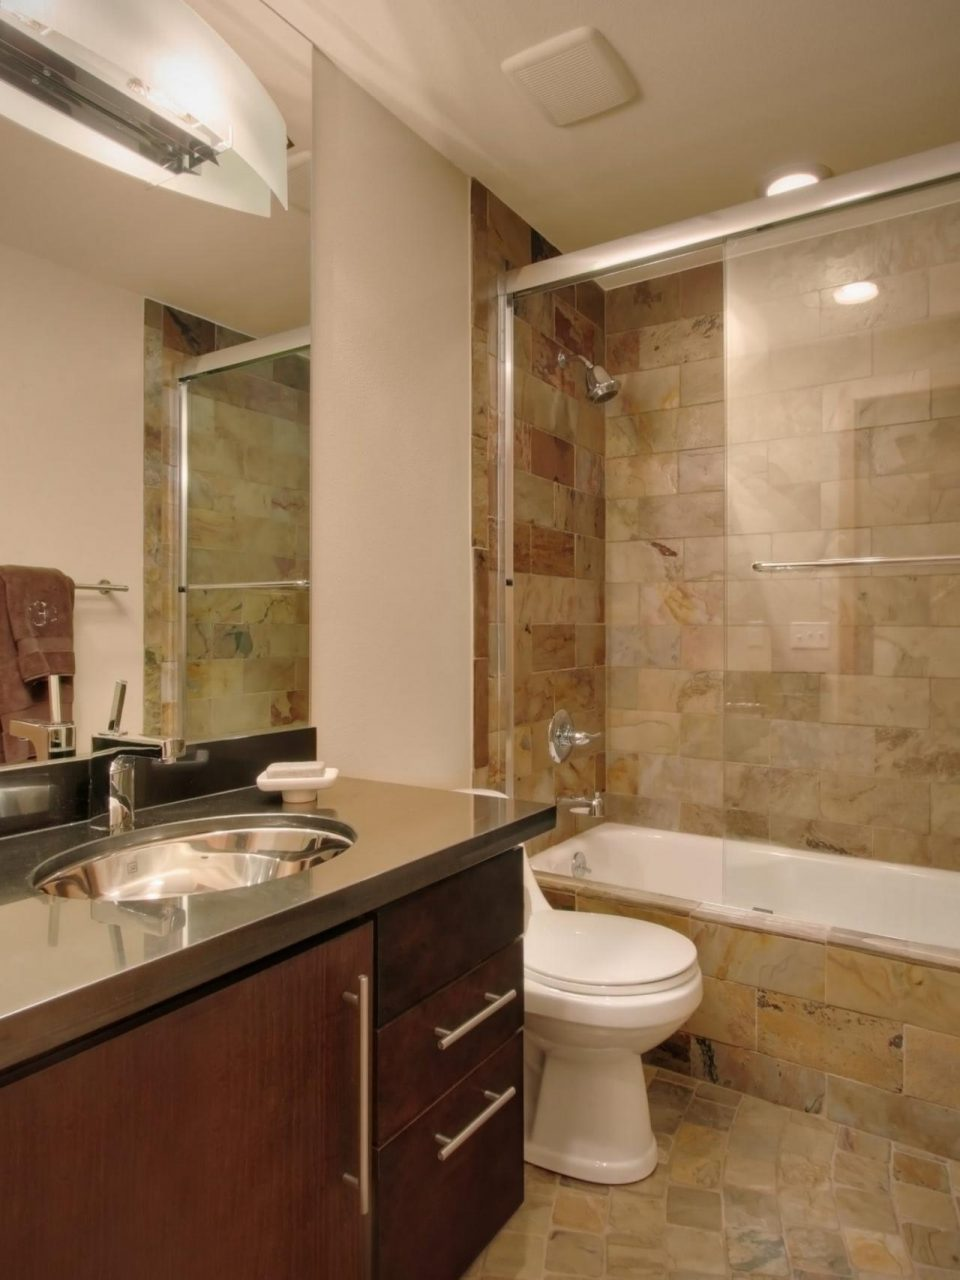 Bathroom Ideas Earth Tones Home Decor Interior Design